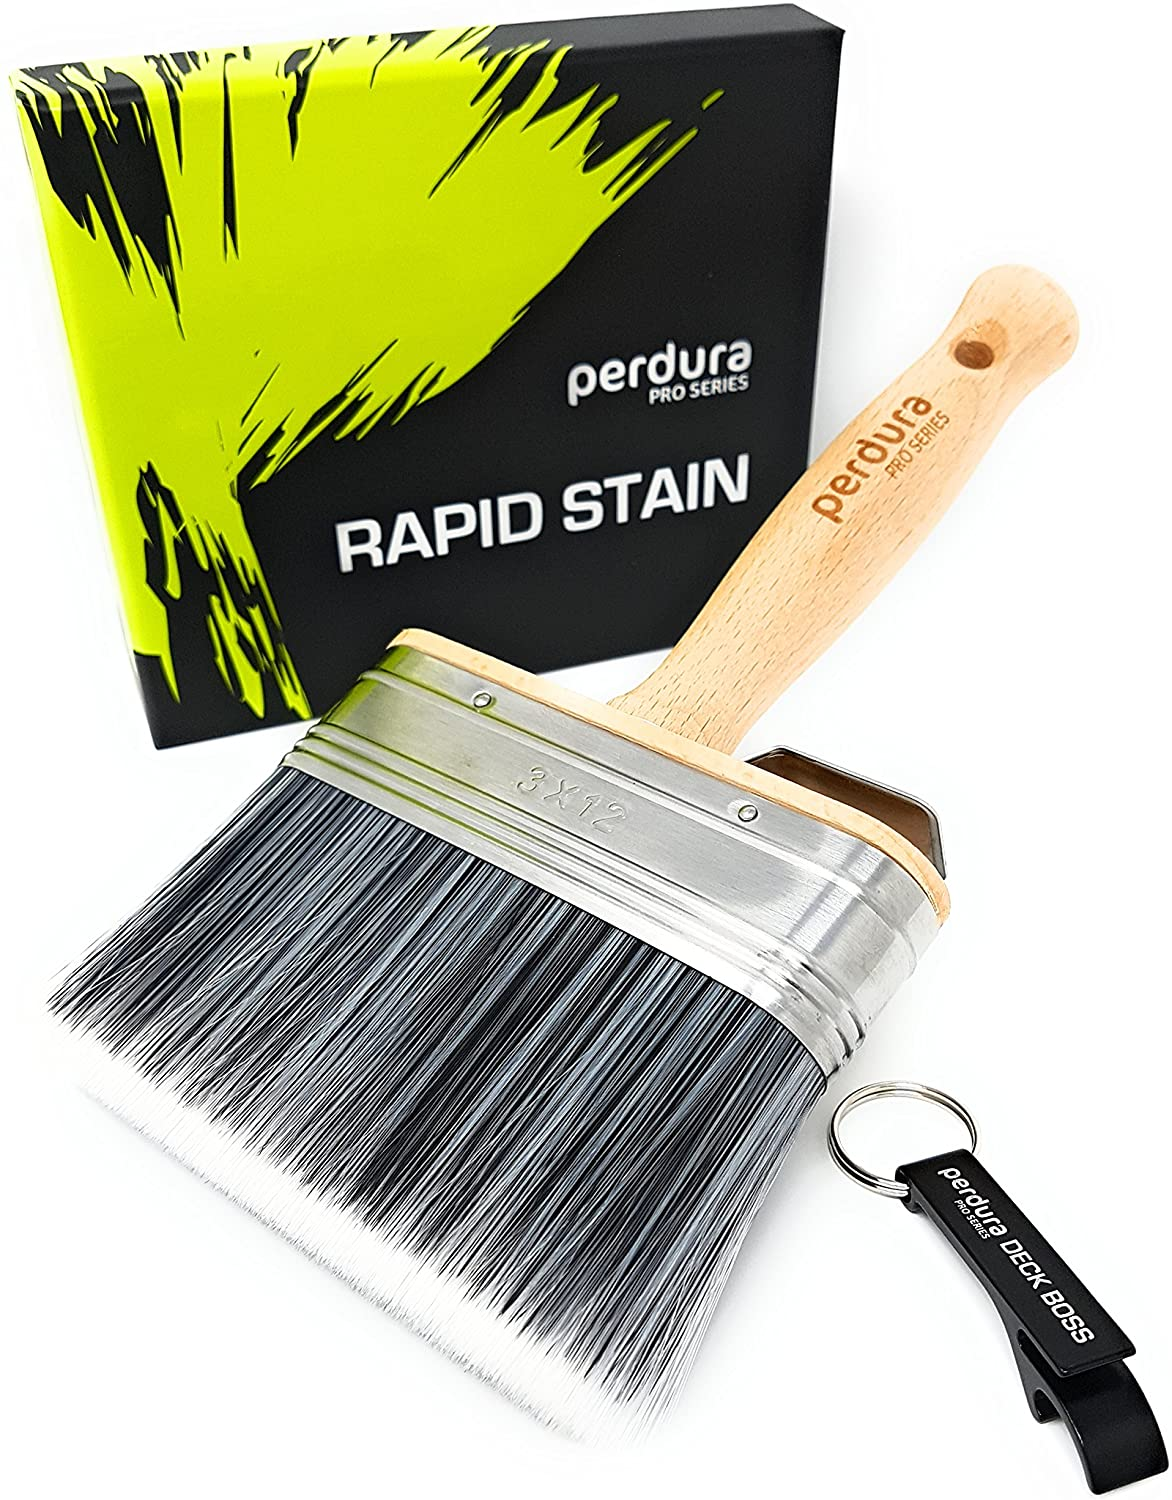 Deck Stain Brush Applicator - Rapid Stain by Perdura